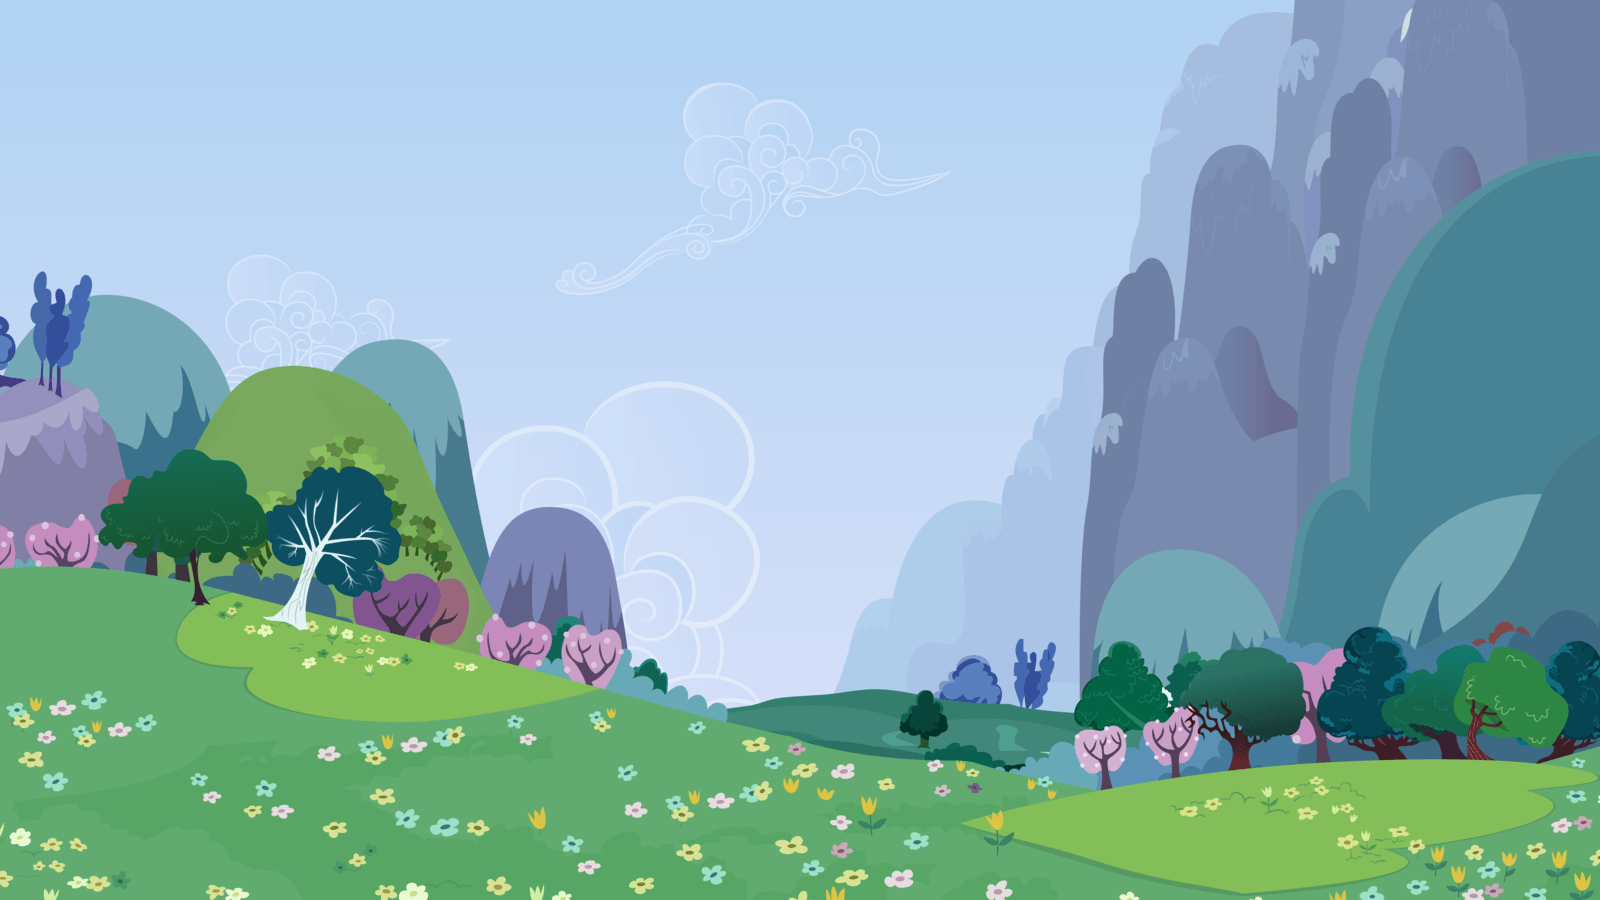 mlp background pony wallpapers - photo #2